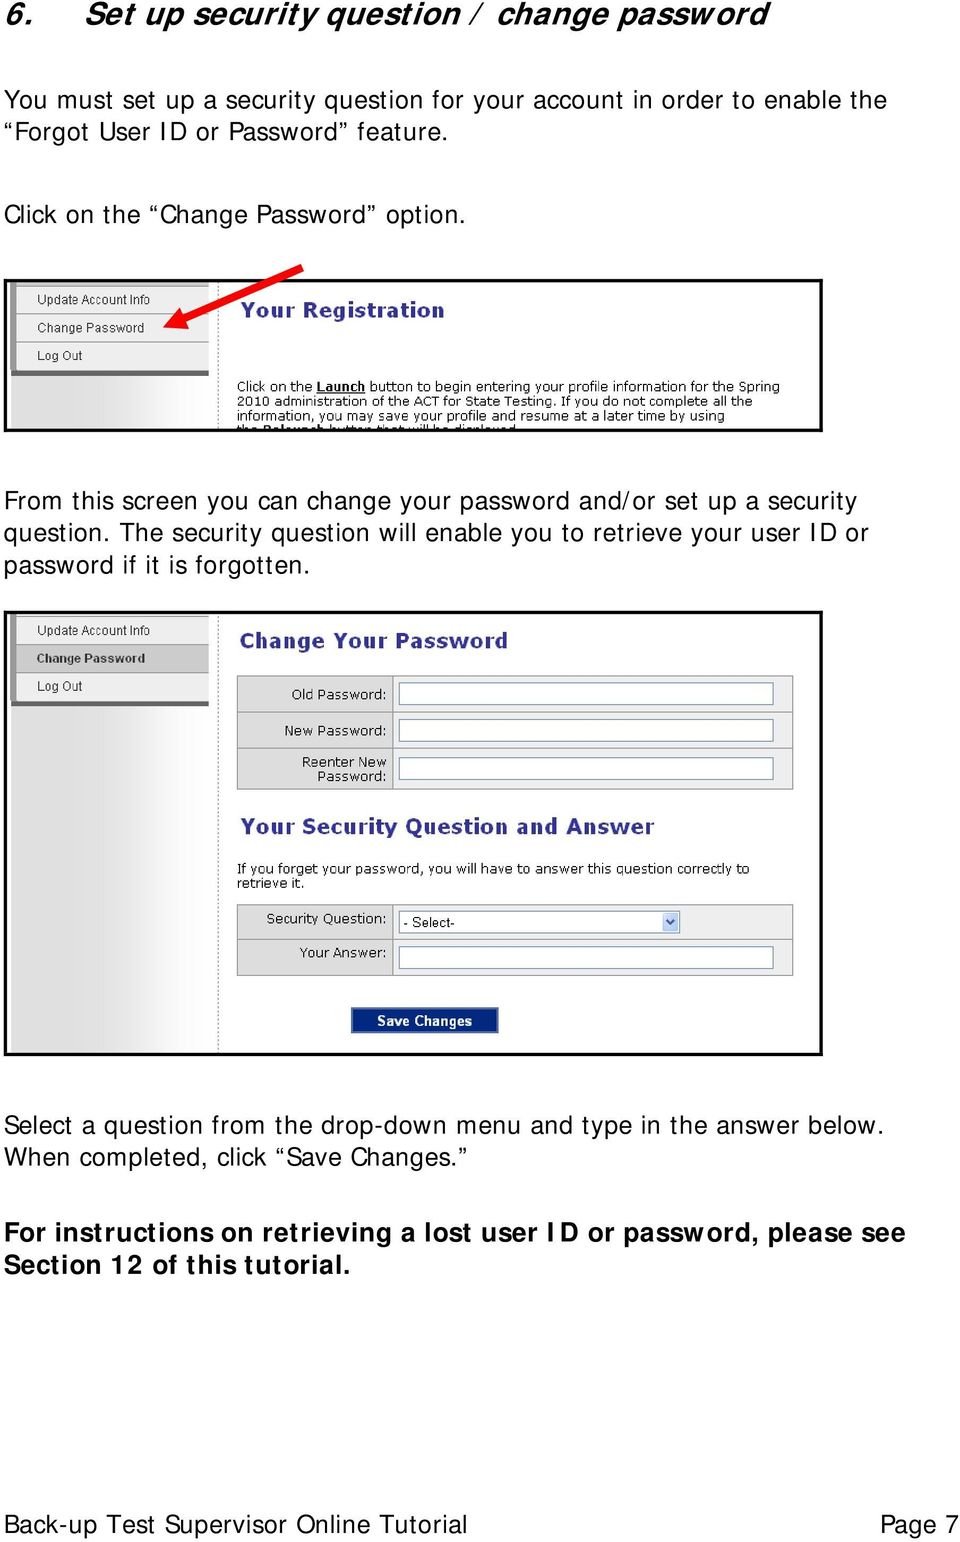 The security question will enable you to retrieve your user ID or password if it is forgotten.